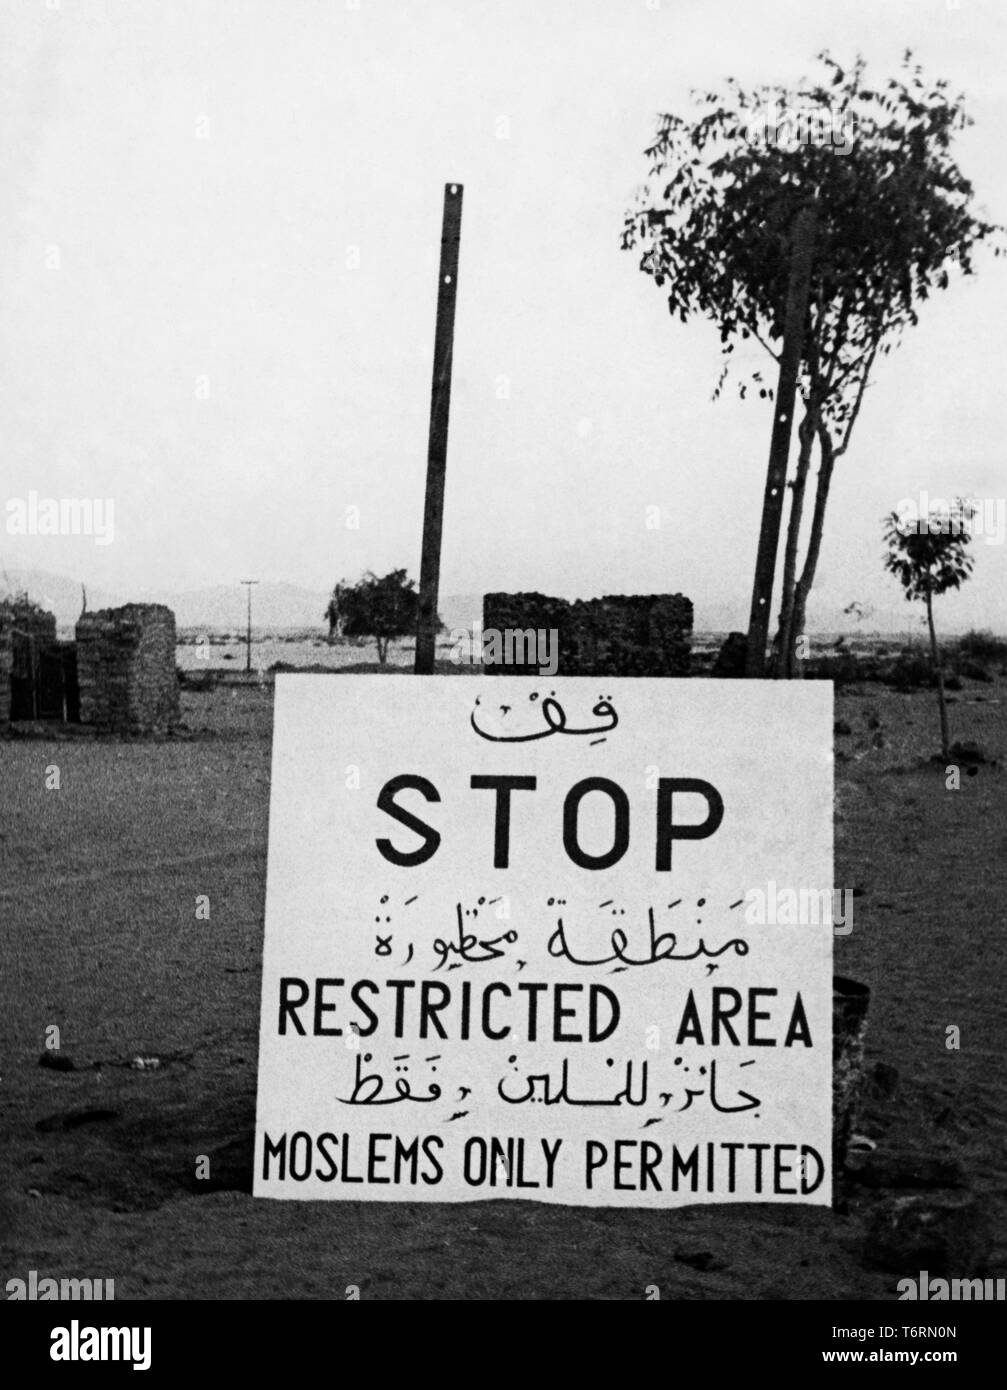 Saudi Arabia, the mecca, signpost indicating the beginning of restricted area moslems only permitted, 1953 - Stock Image